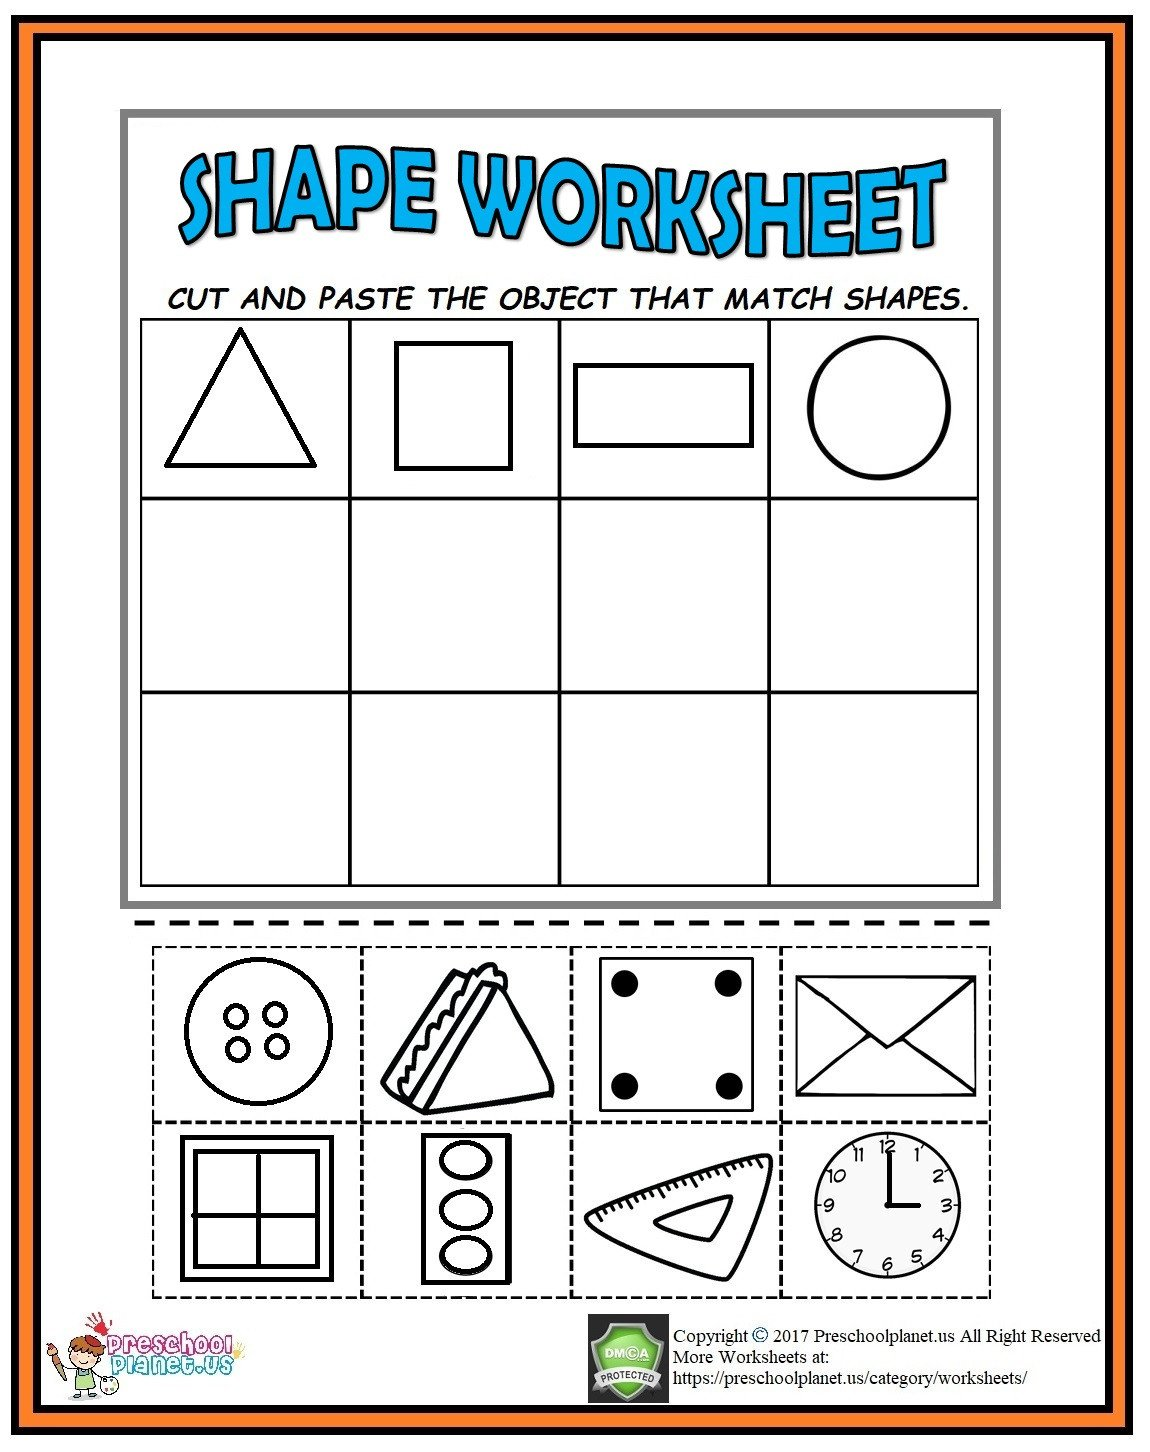 cut and paste shape worksheet